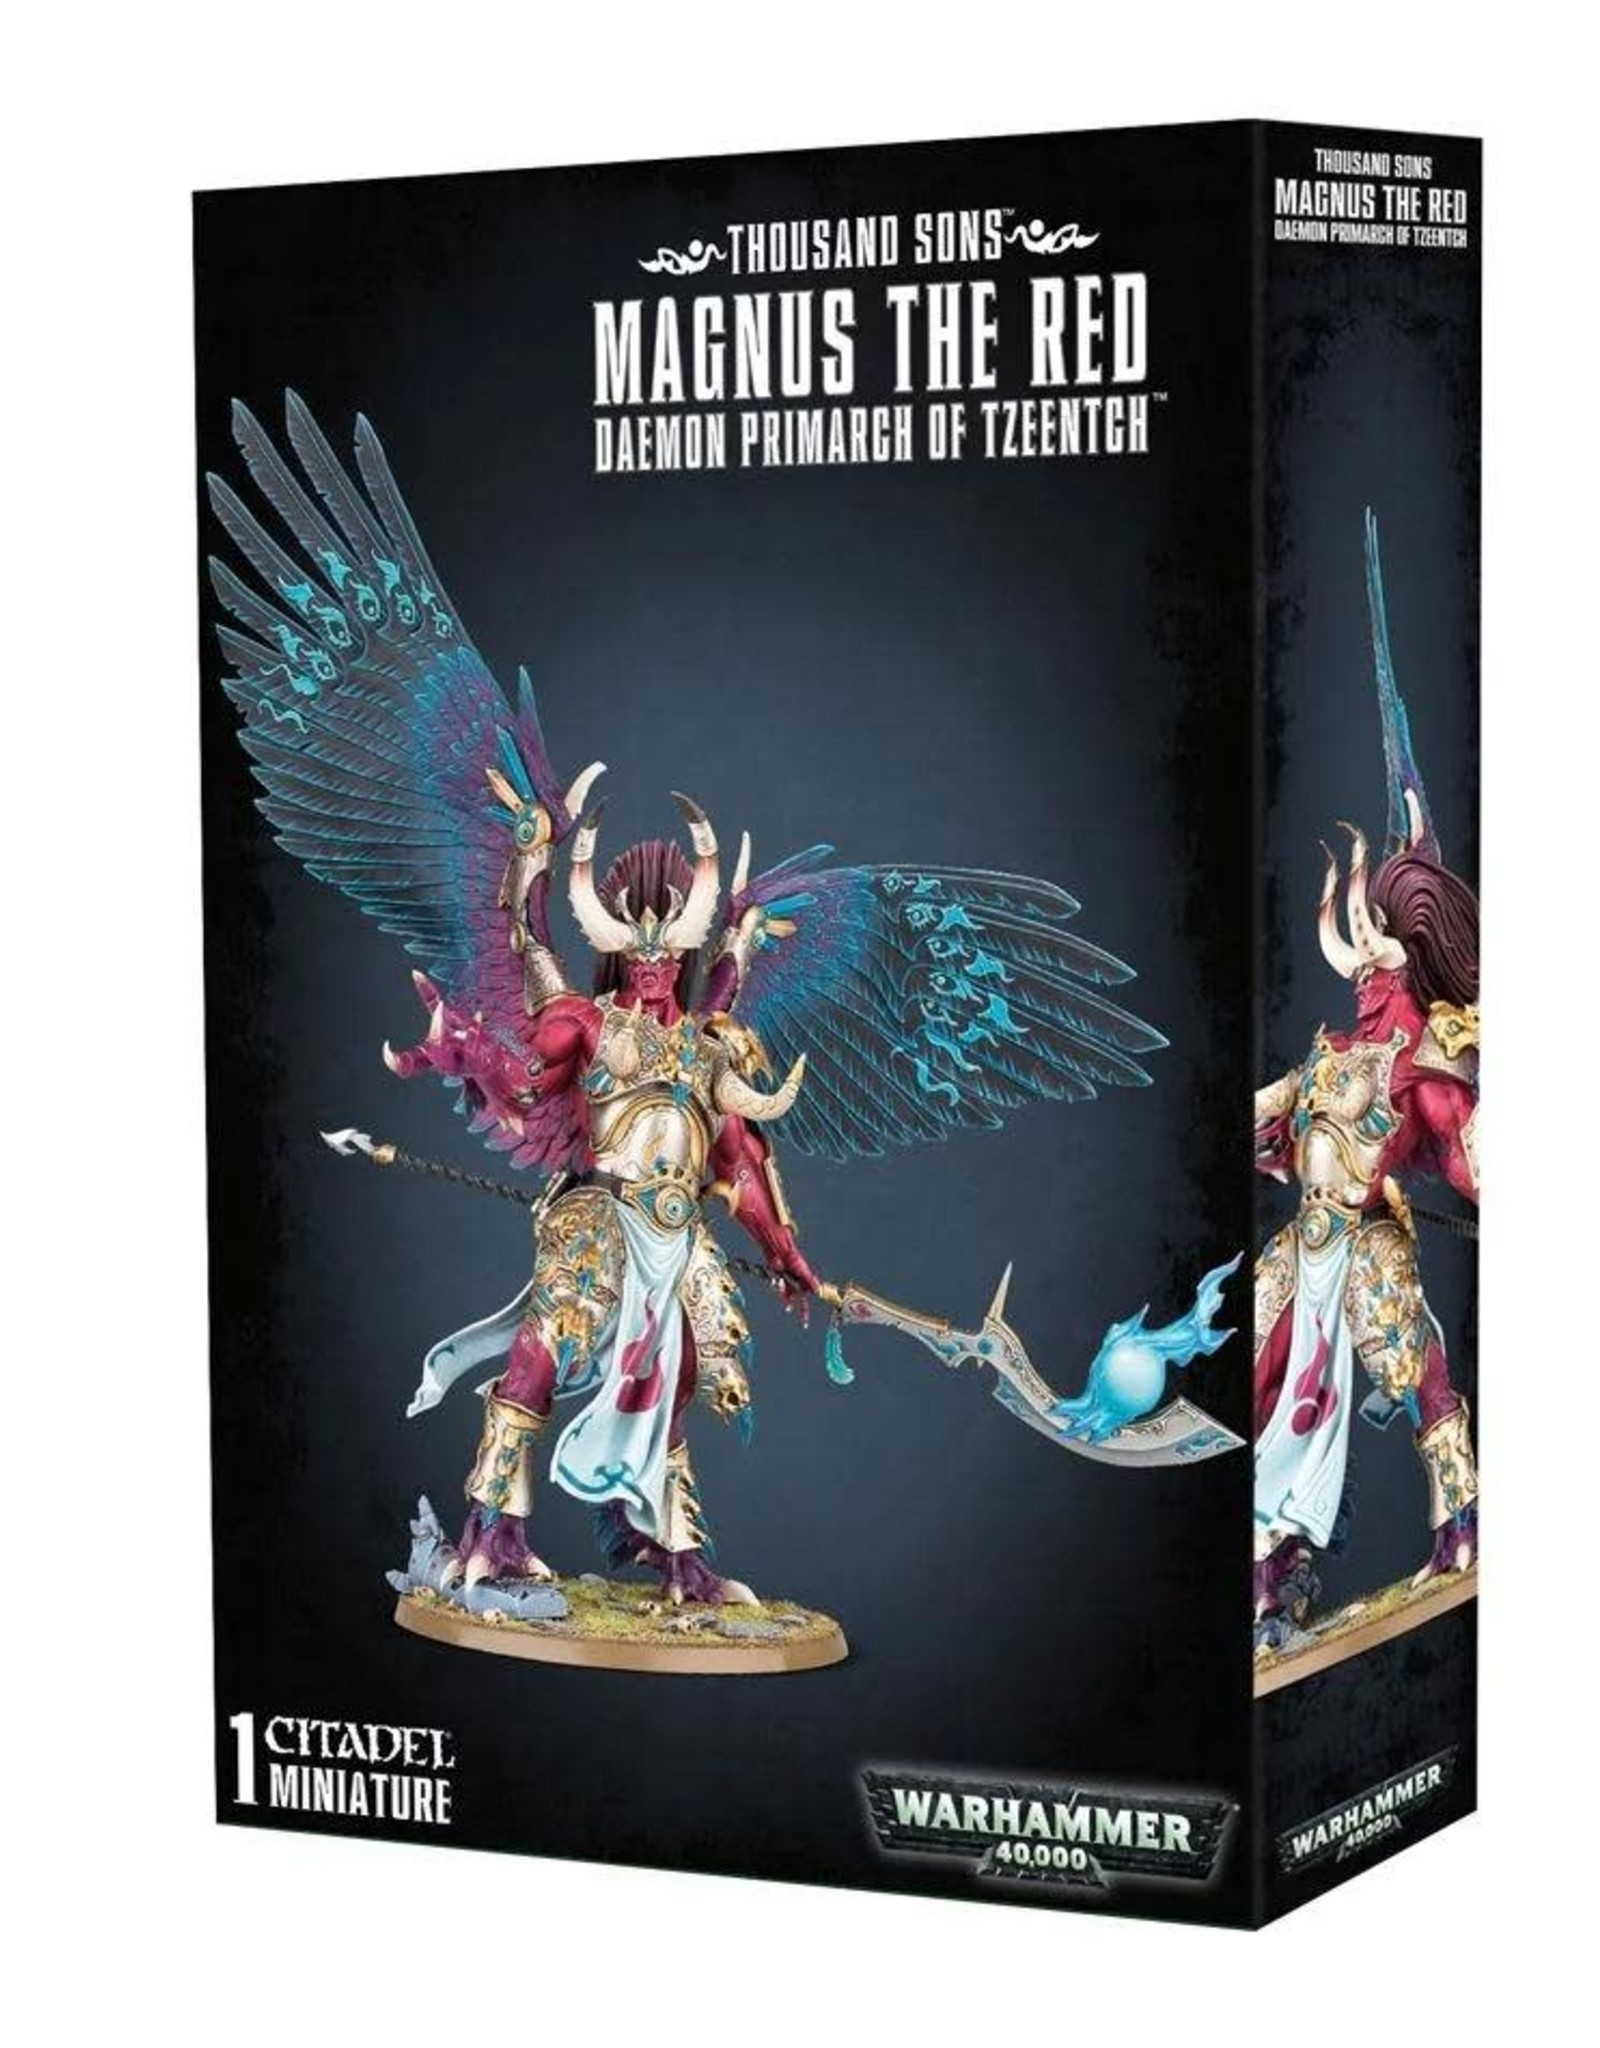 Warhammer 40K Thousand Sons Magnus The Red